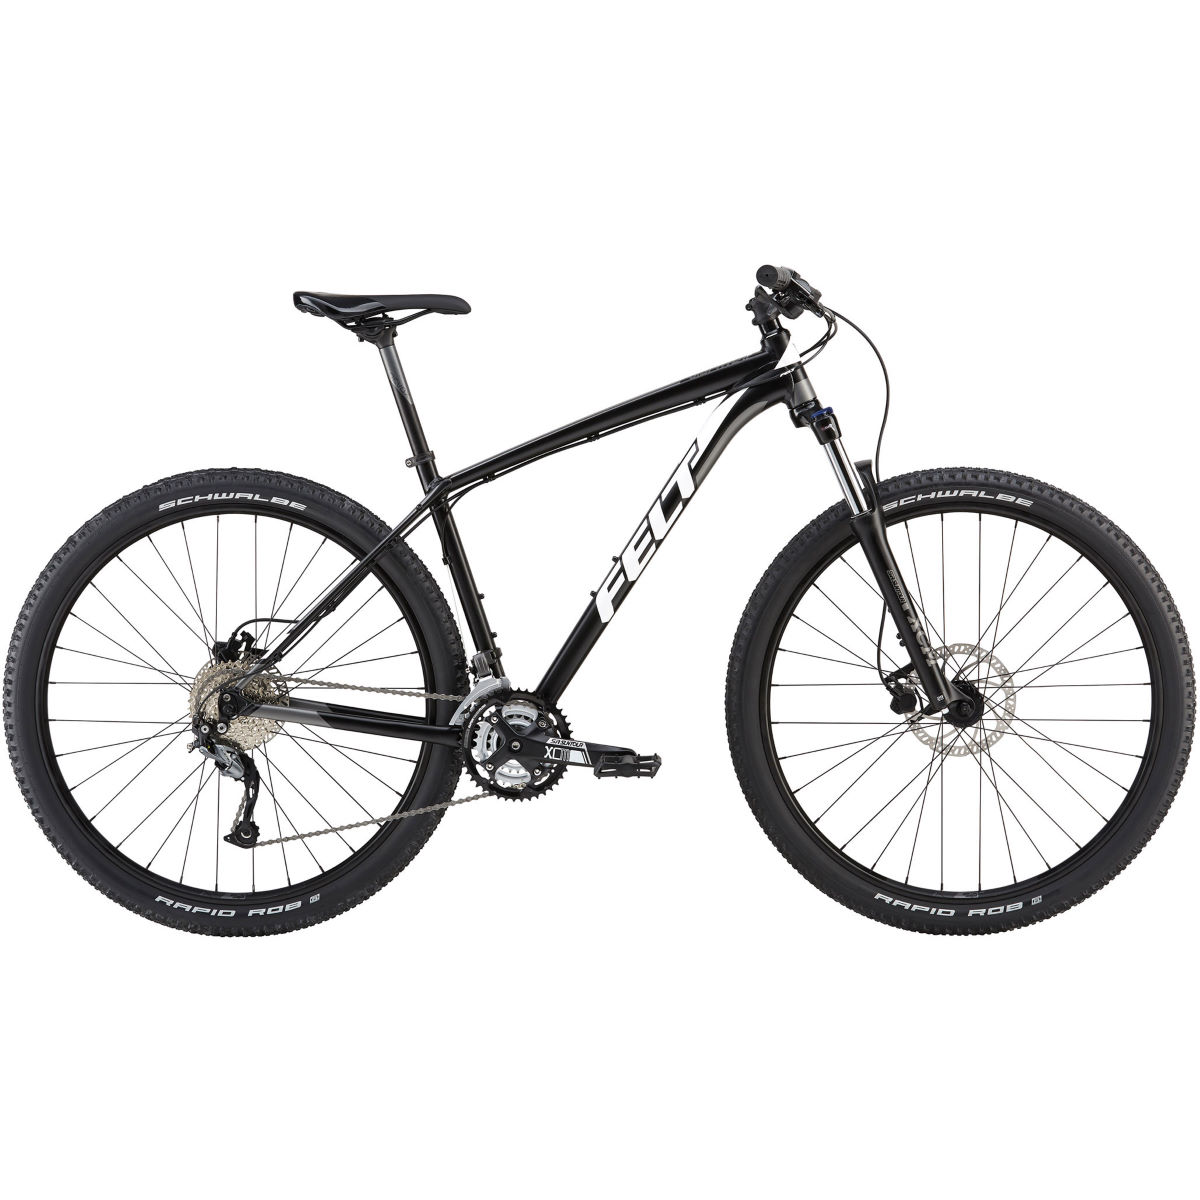 VTT semi-rigide Felt Dispatch 9/70 XC (2018) - 20'' Stock Bike